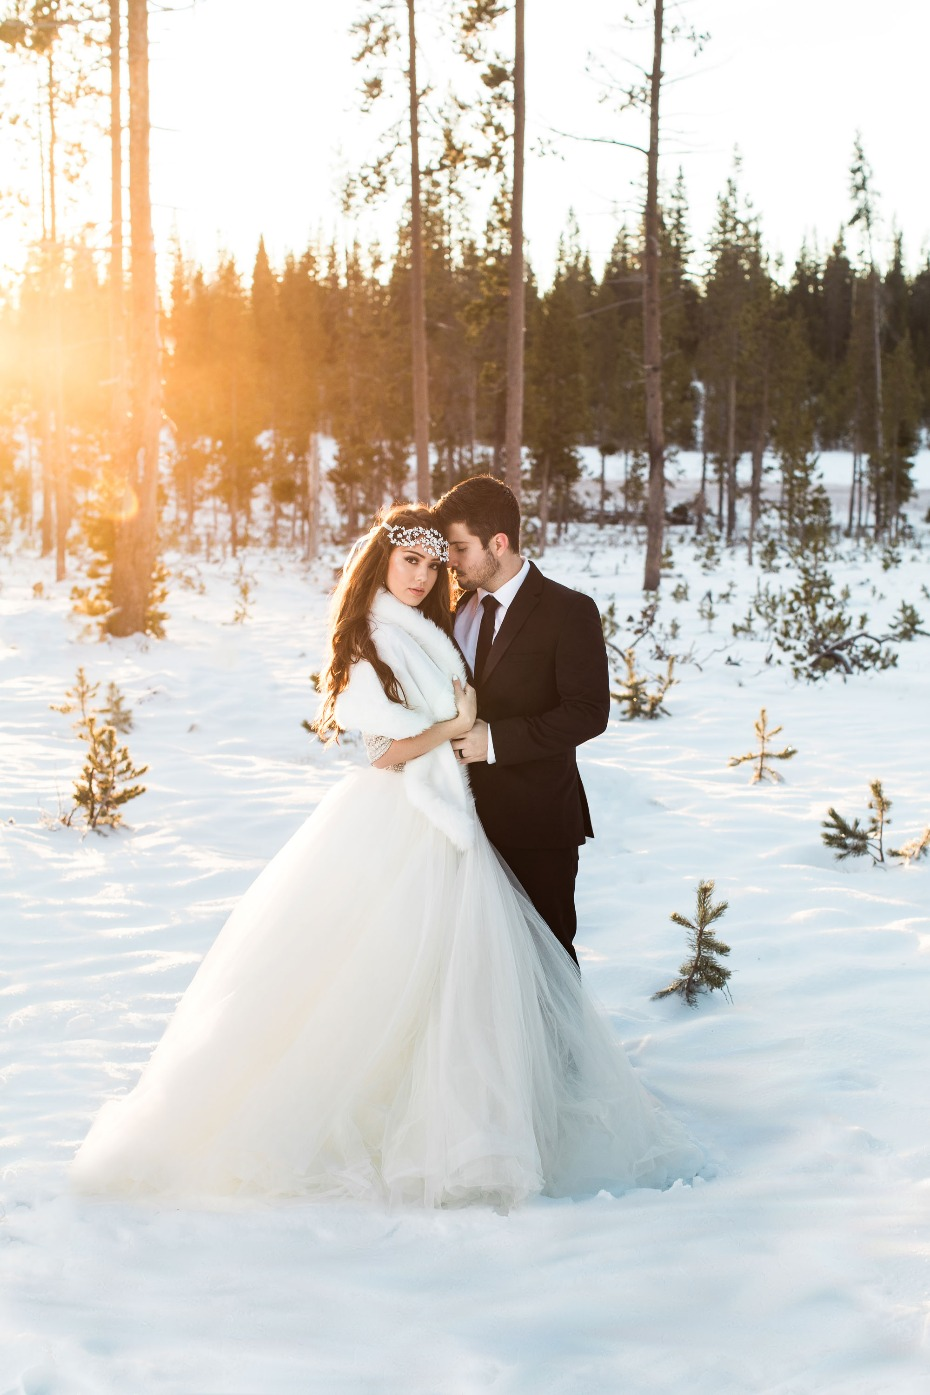 Glam winter wedding ideas. #snowywedding #maggiesottero